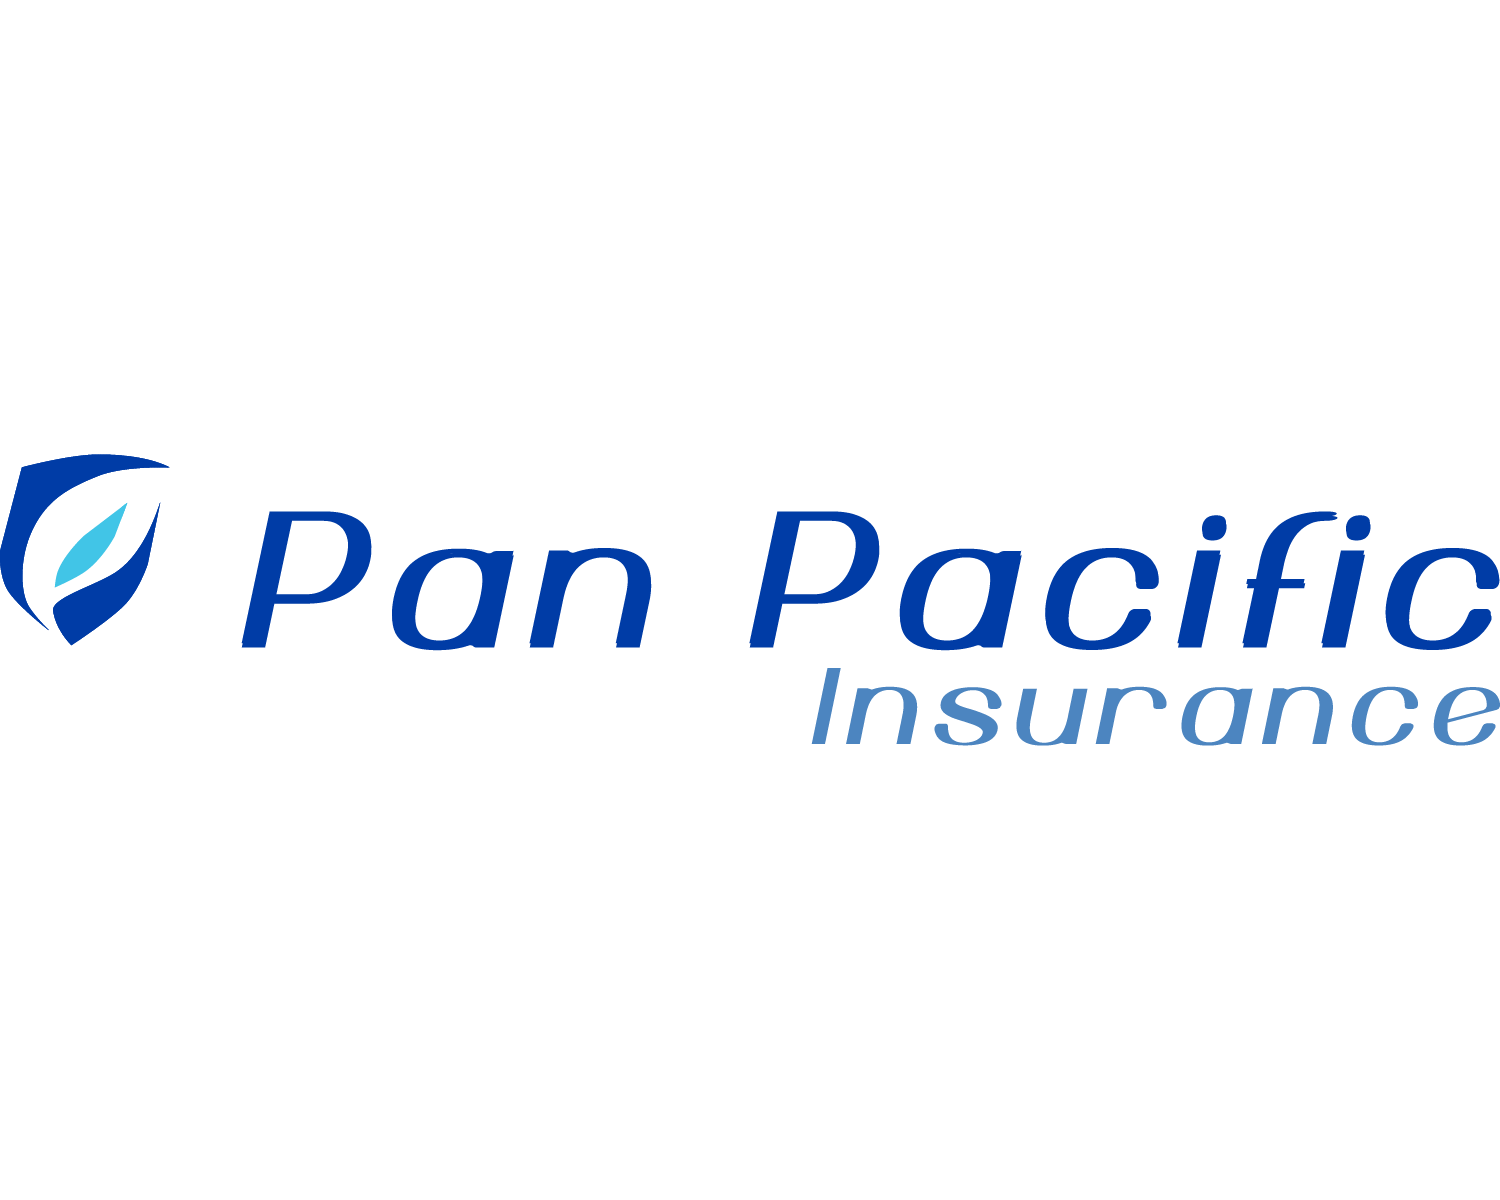 PT PAN PACIFIC INSURANCE